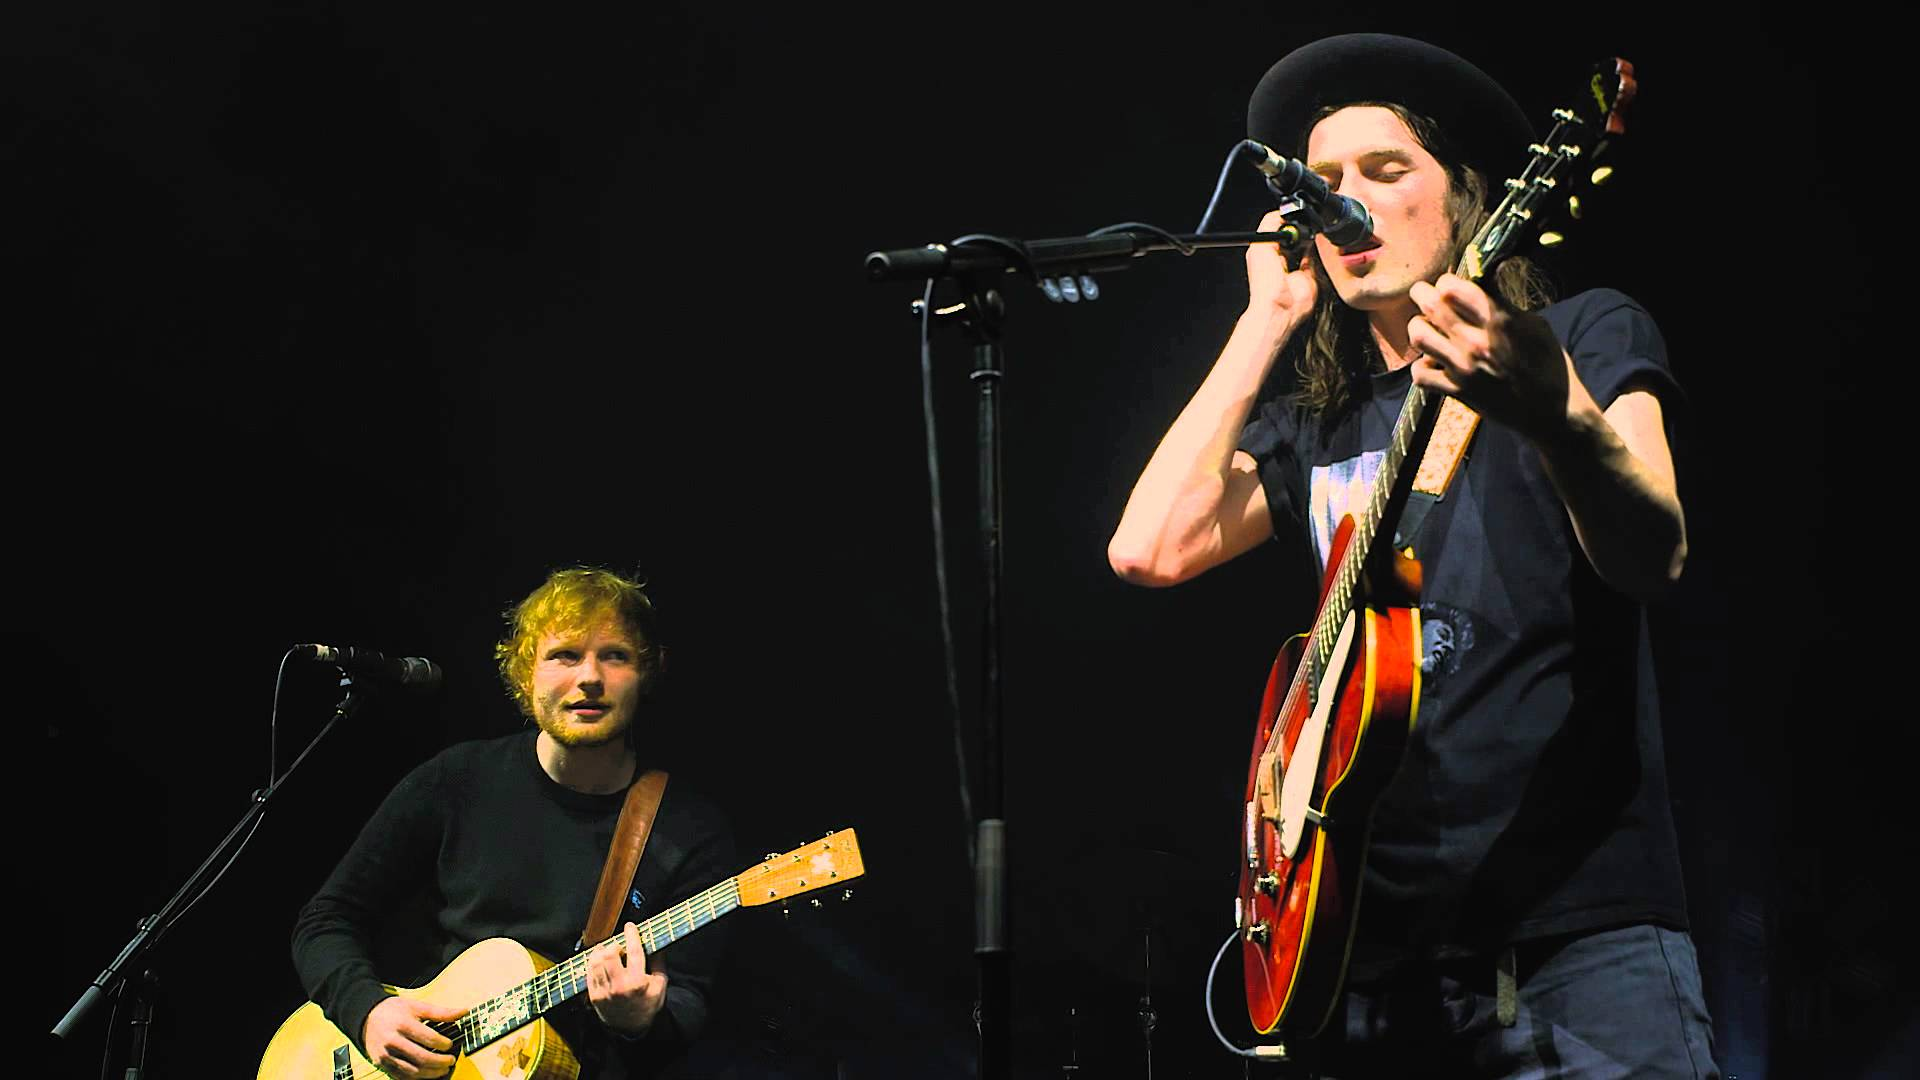 James Bay x Ed Sheeran